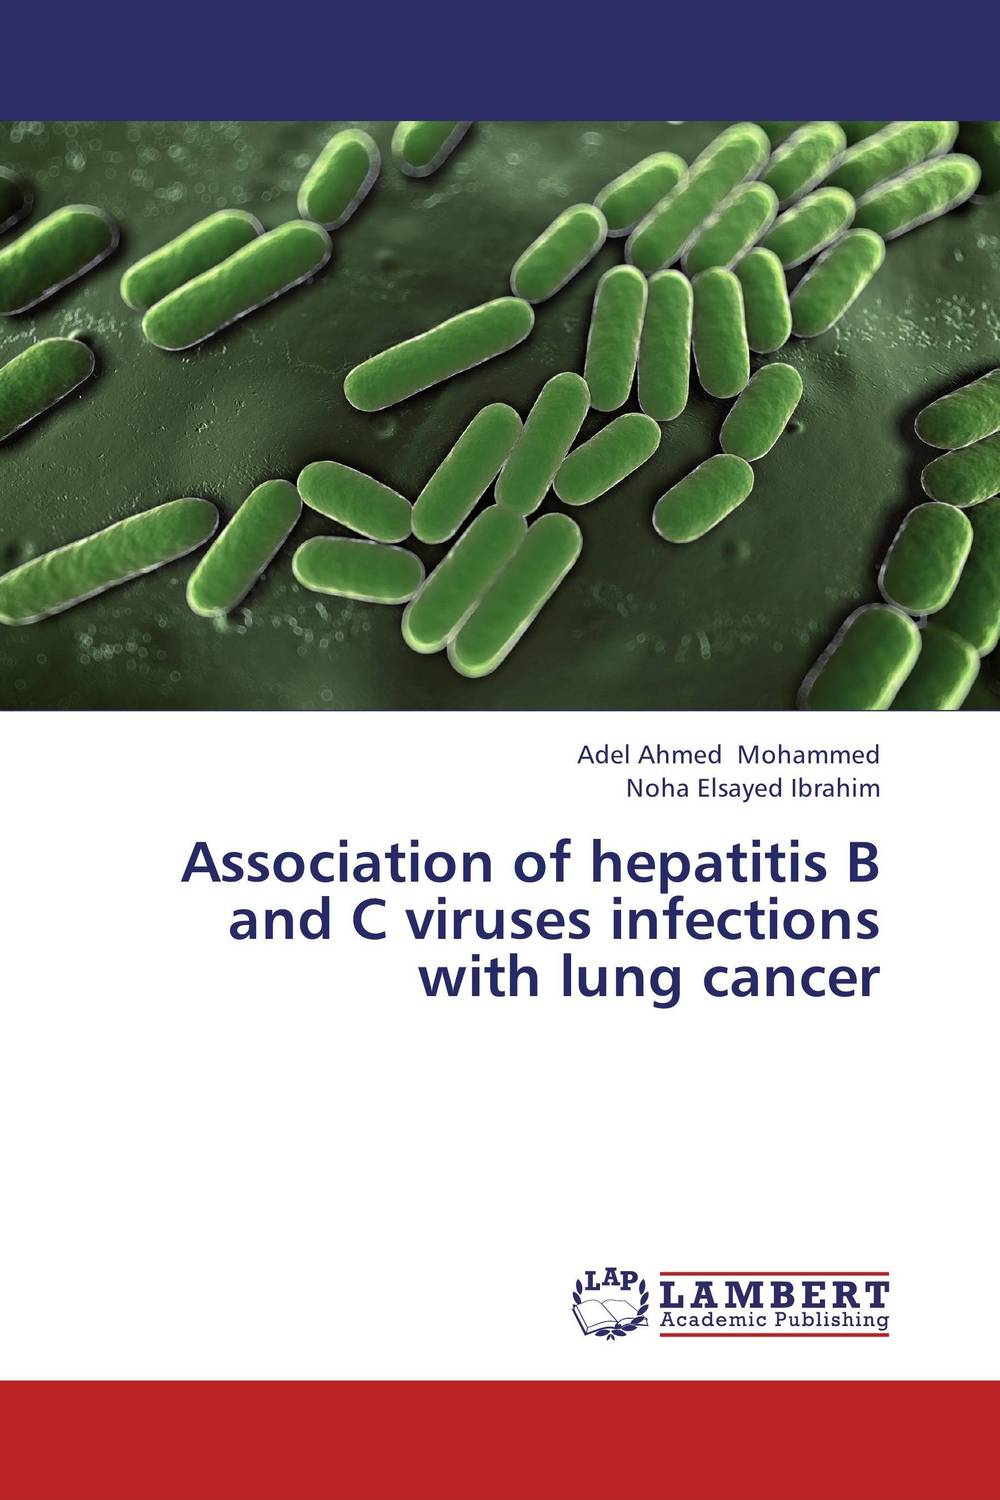 Association of hepatitis B and C viruses infections with lung cancer analysis of tp53 and promoter hypermethylation of mgmt in lung cancer